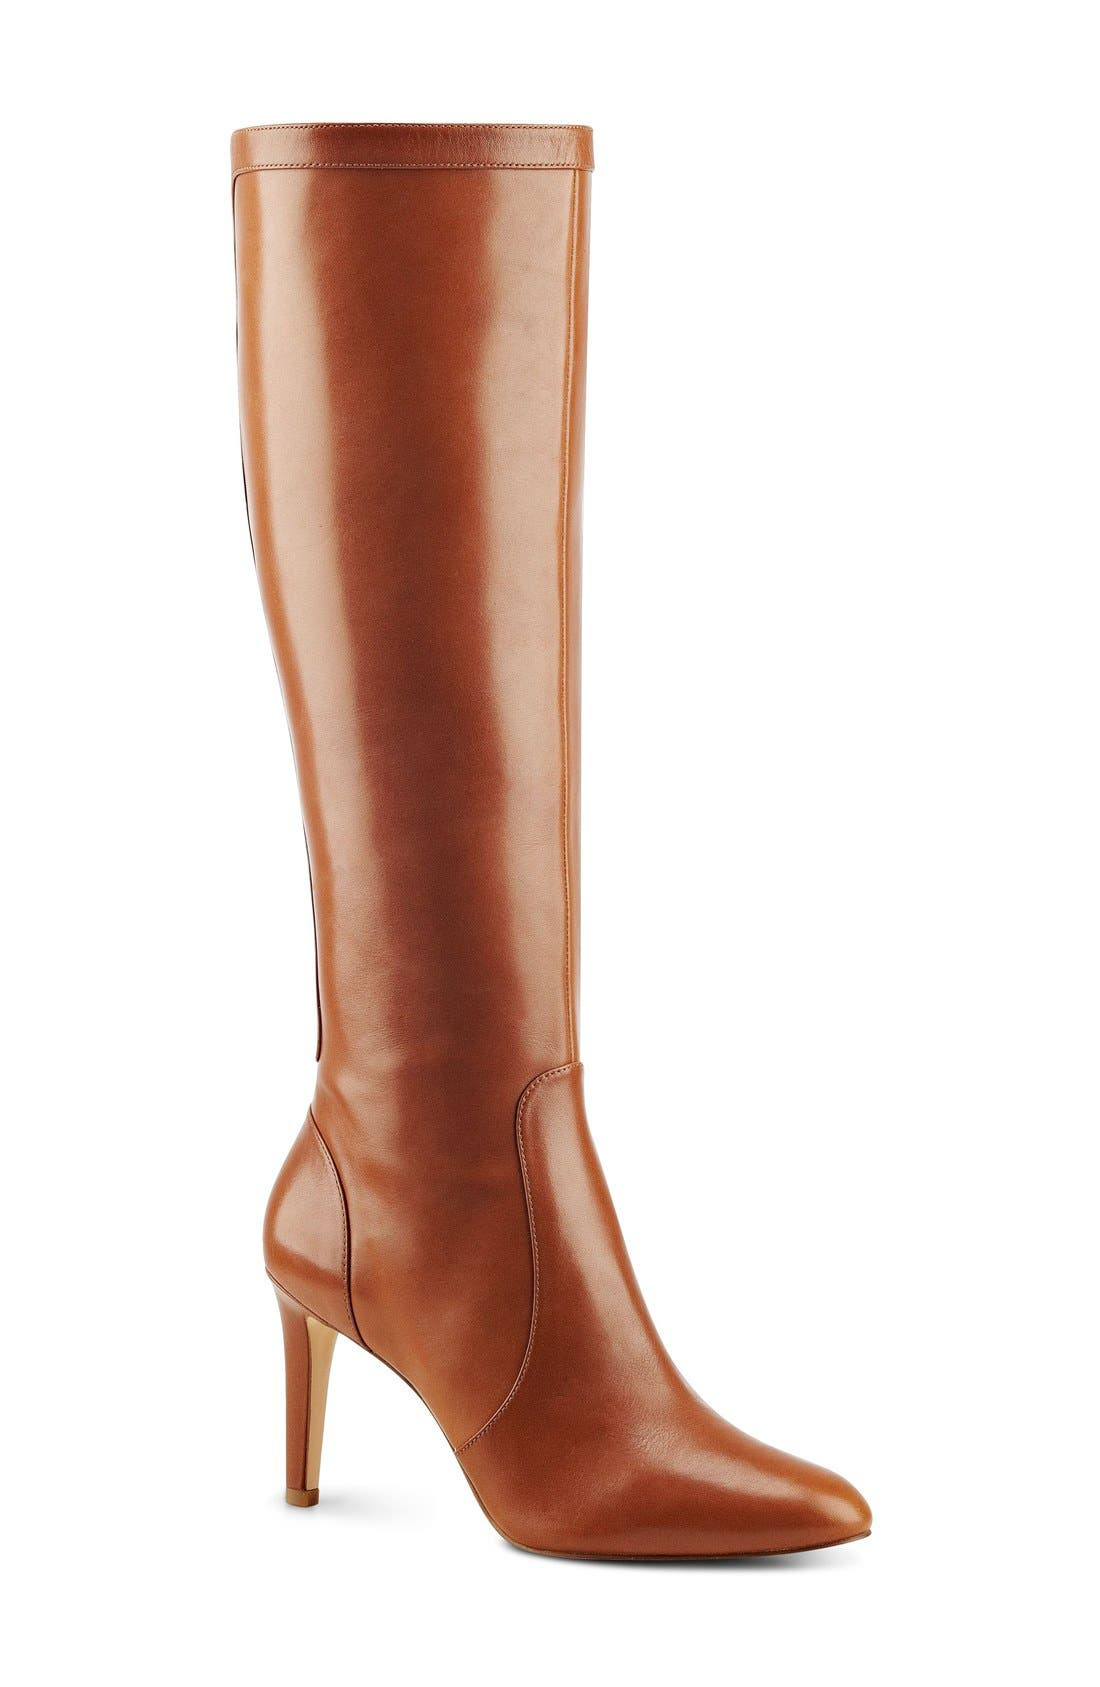 Alternate Image 1 Selected - Nine West 'Hold Tight' High Heel Boot